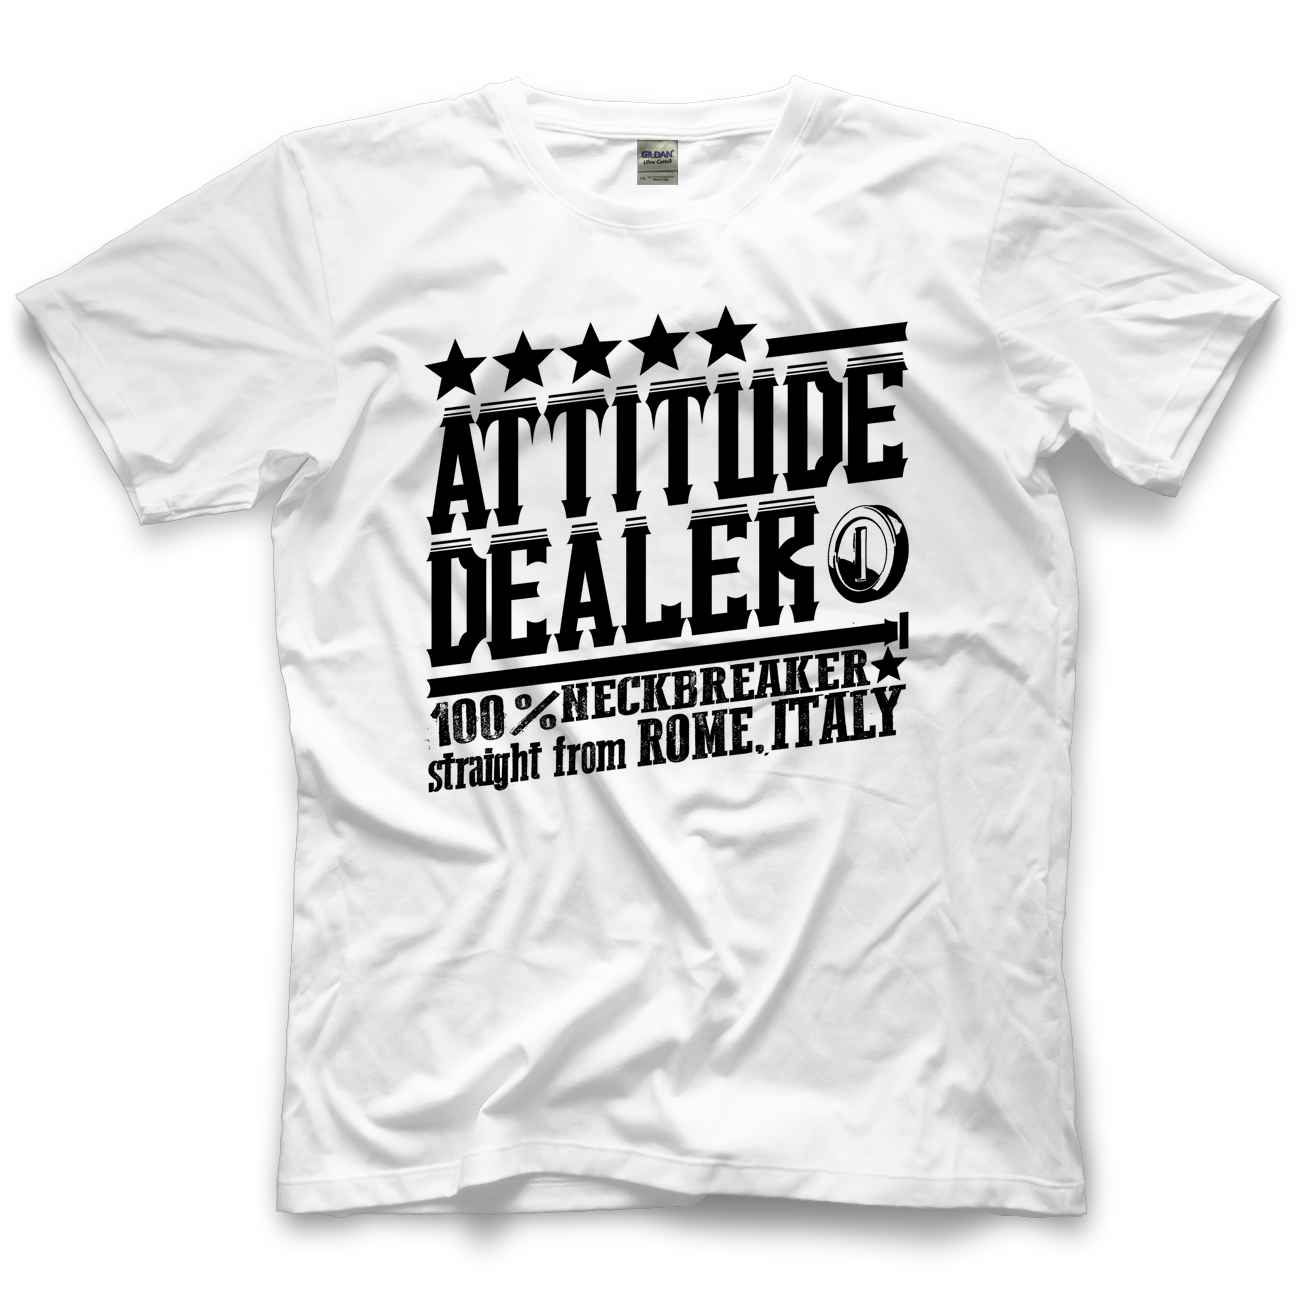 Chris Steel Attitude Dealer T-shirt